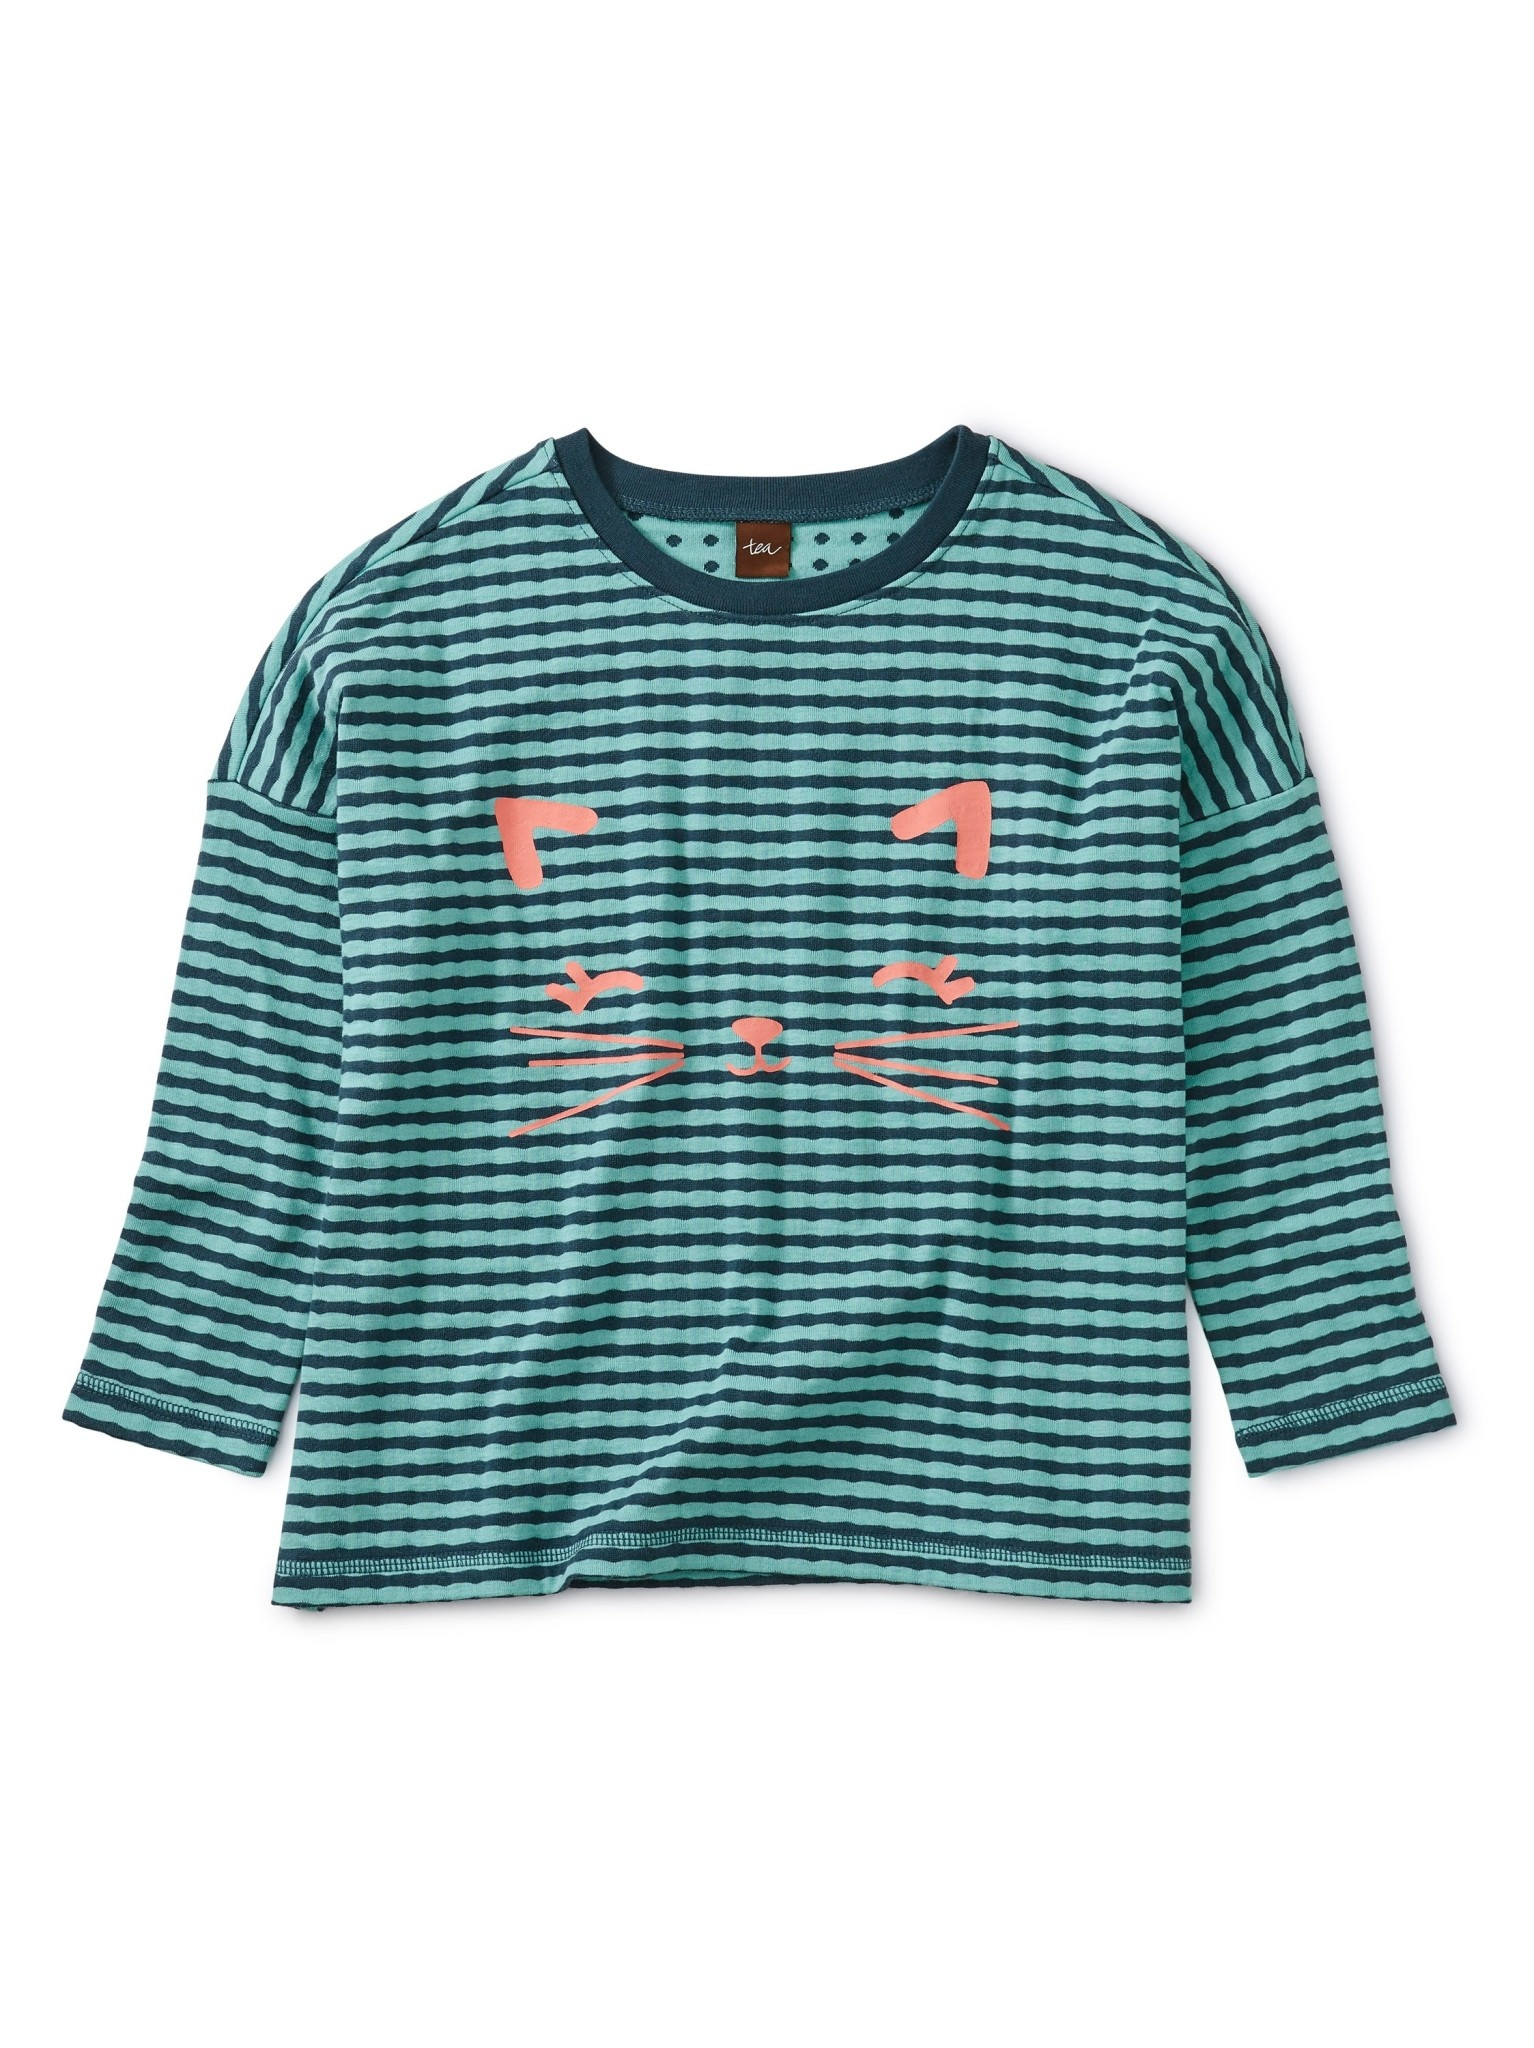 Tea Collection Meow Graphic Knit